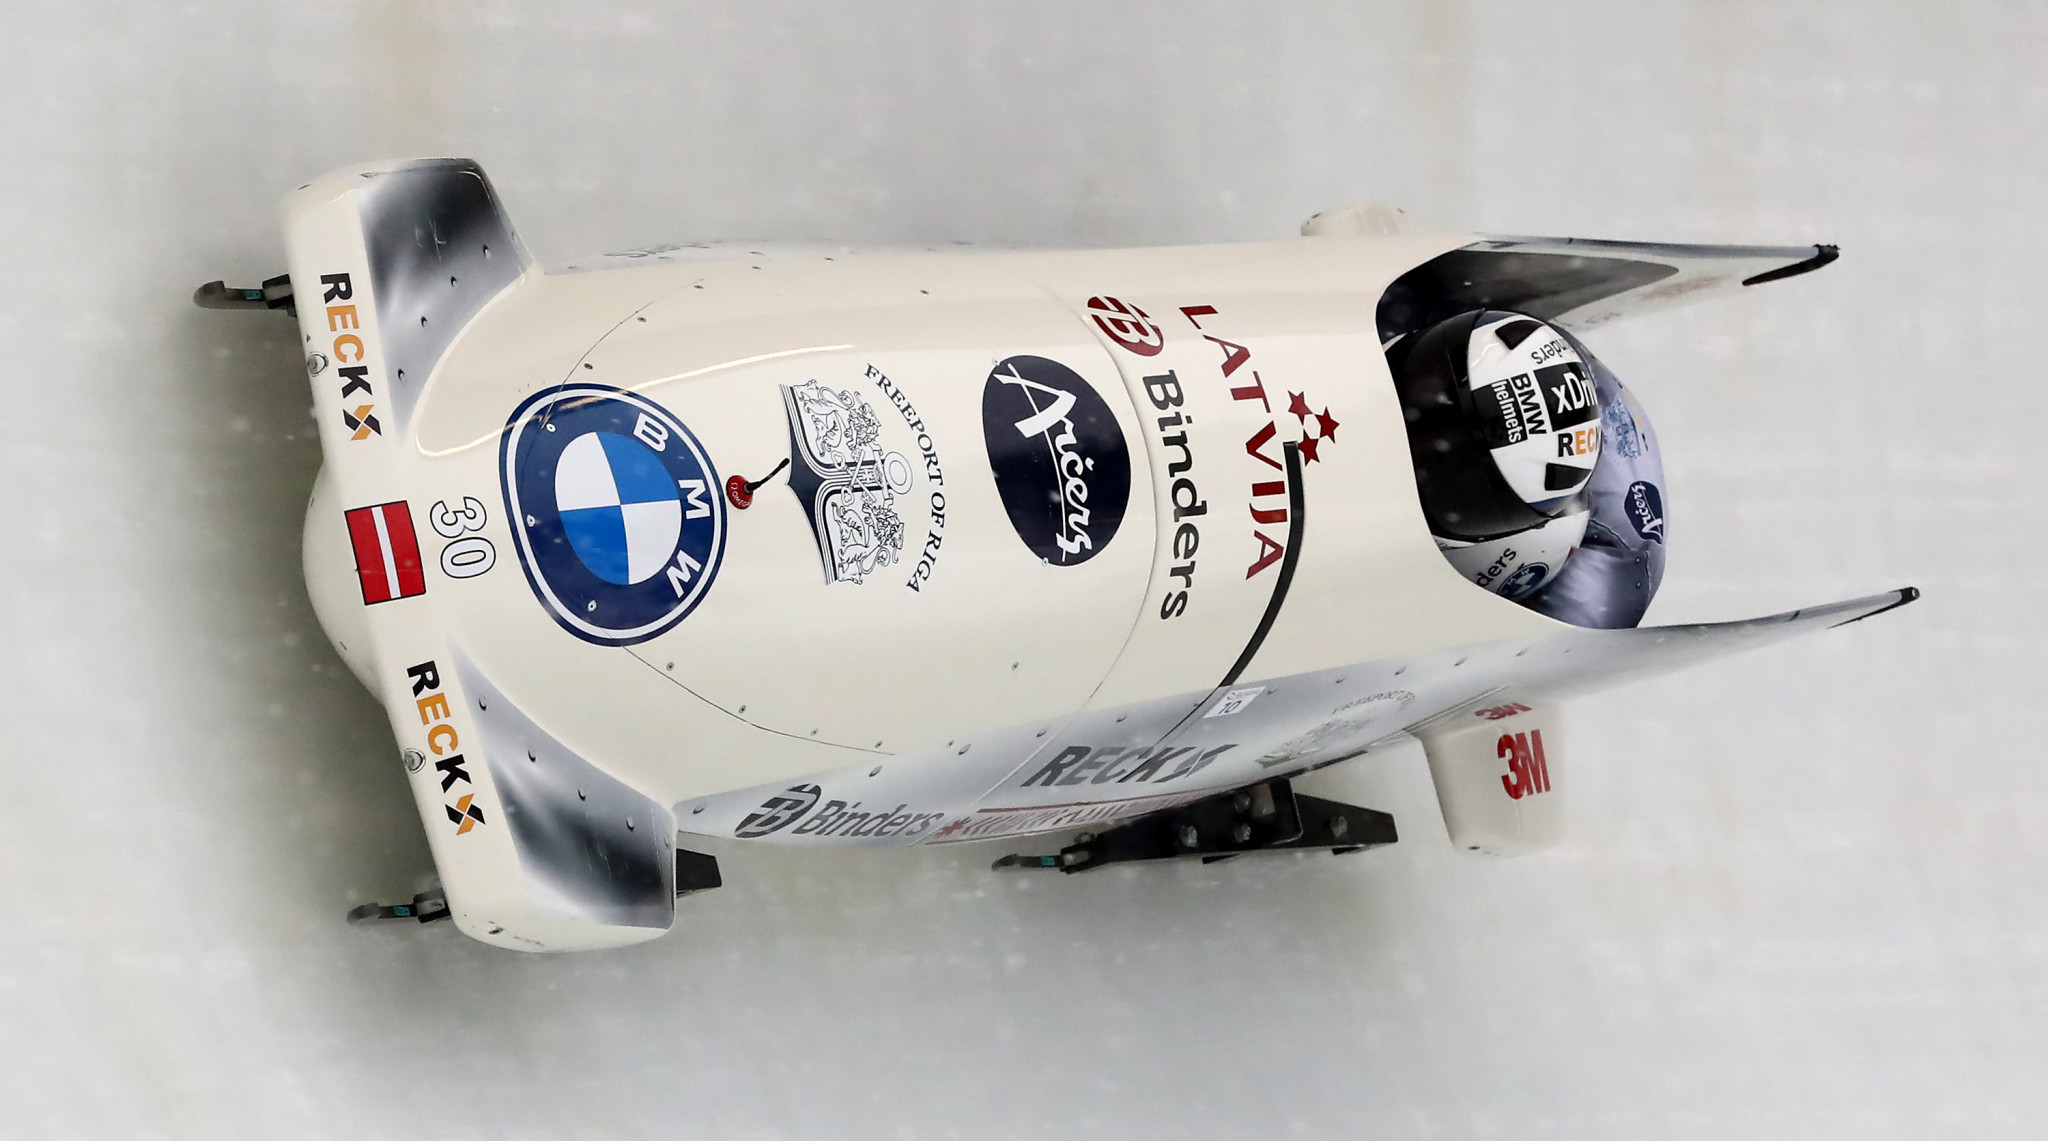 Latvian bobsleigh team seeking new pushers ahead of selection trials